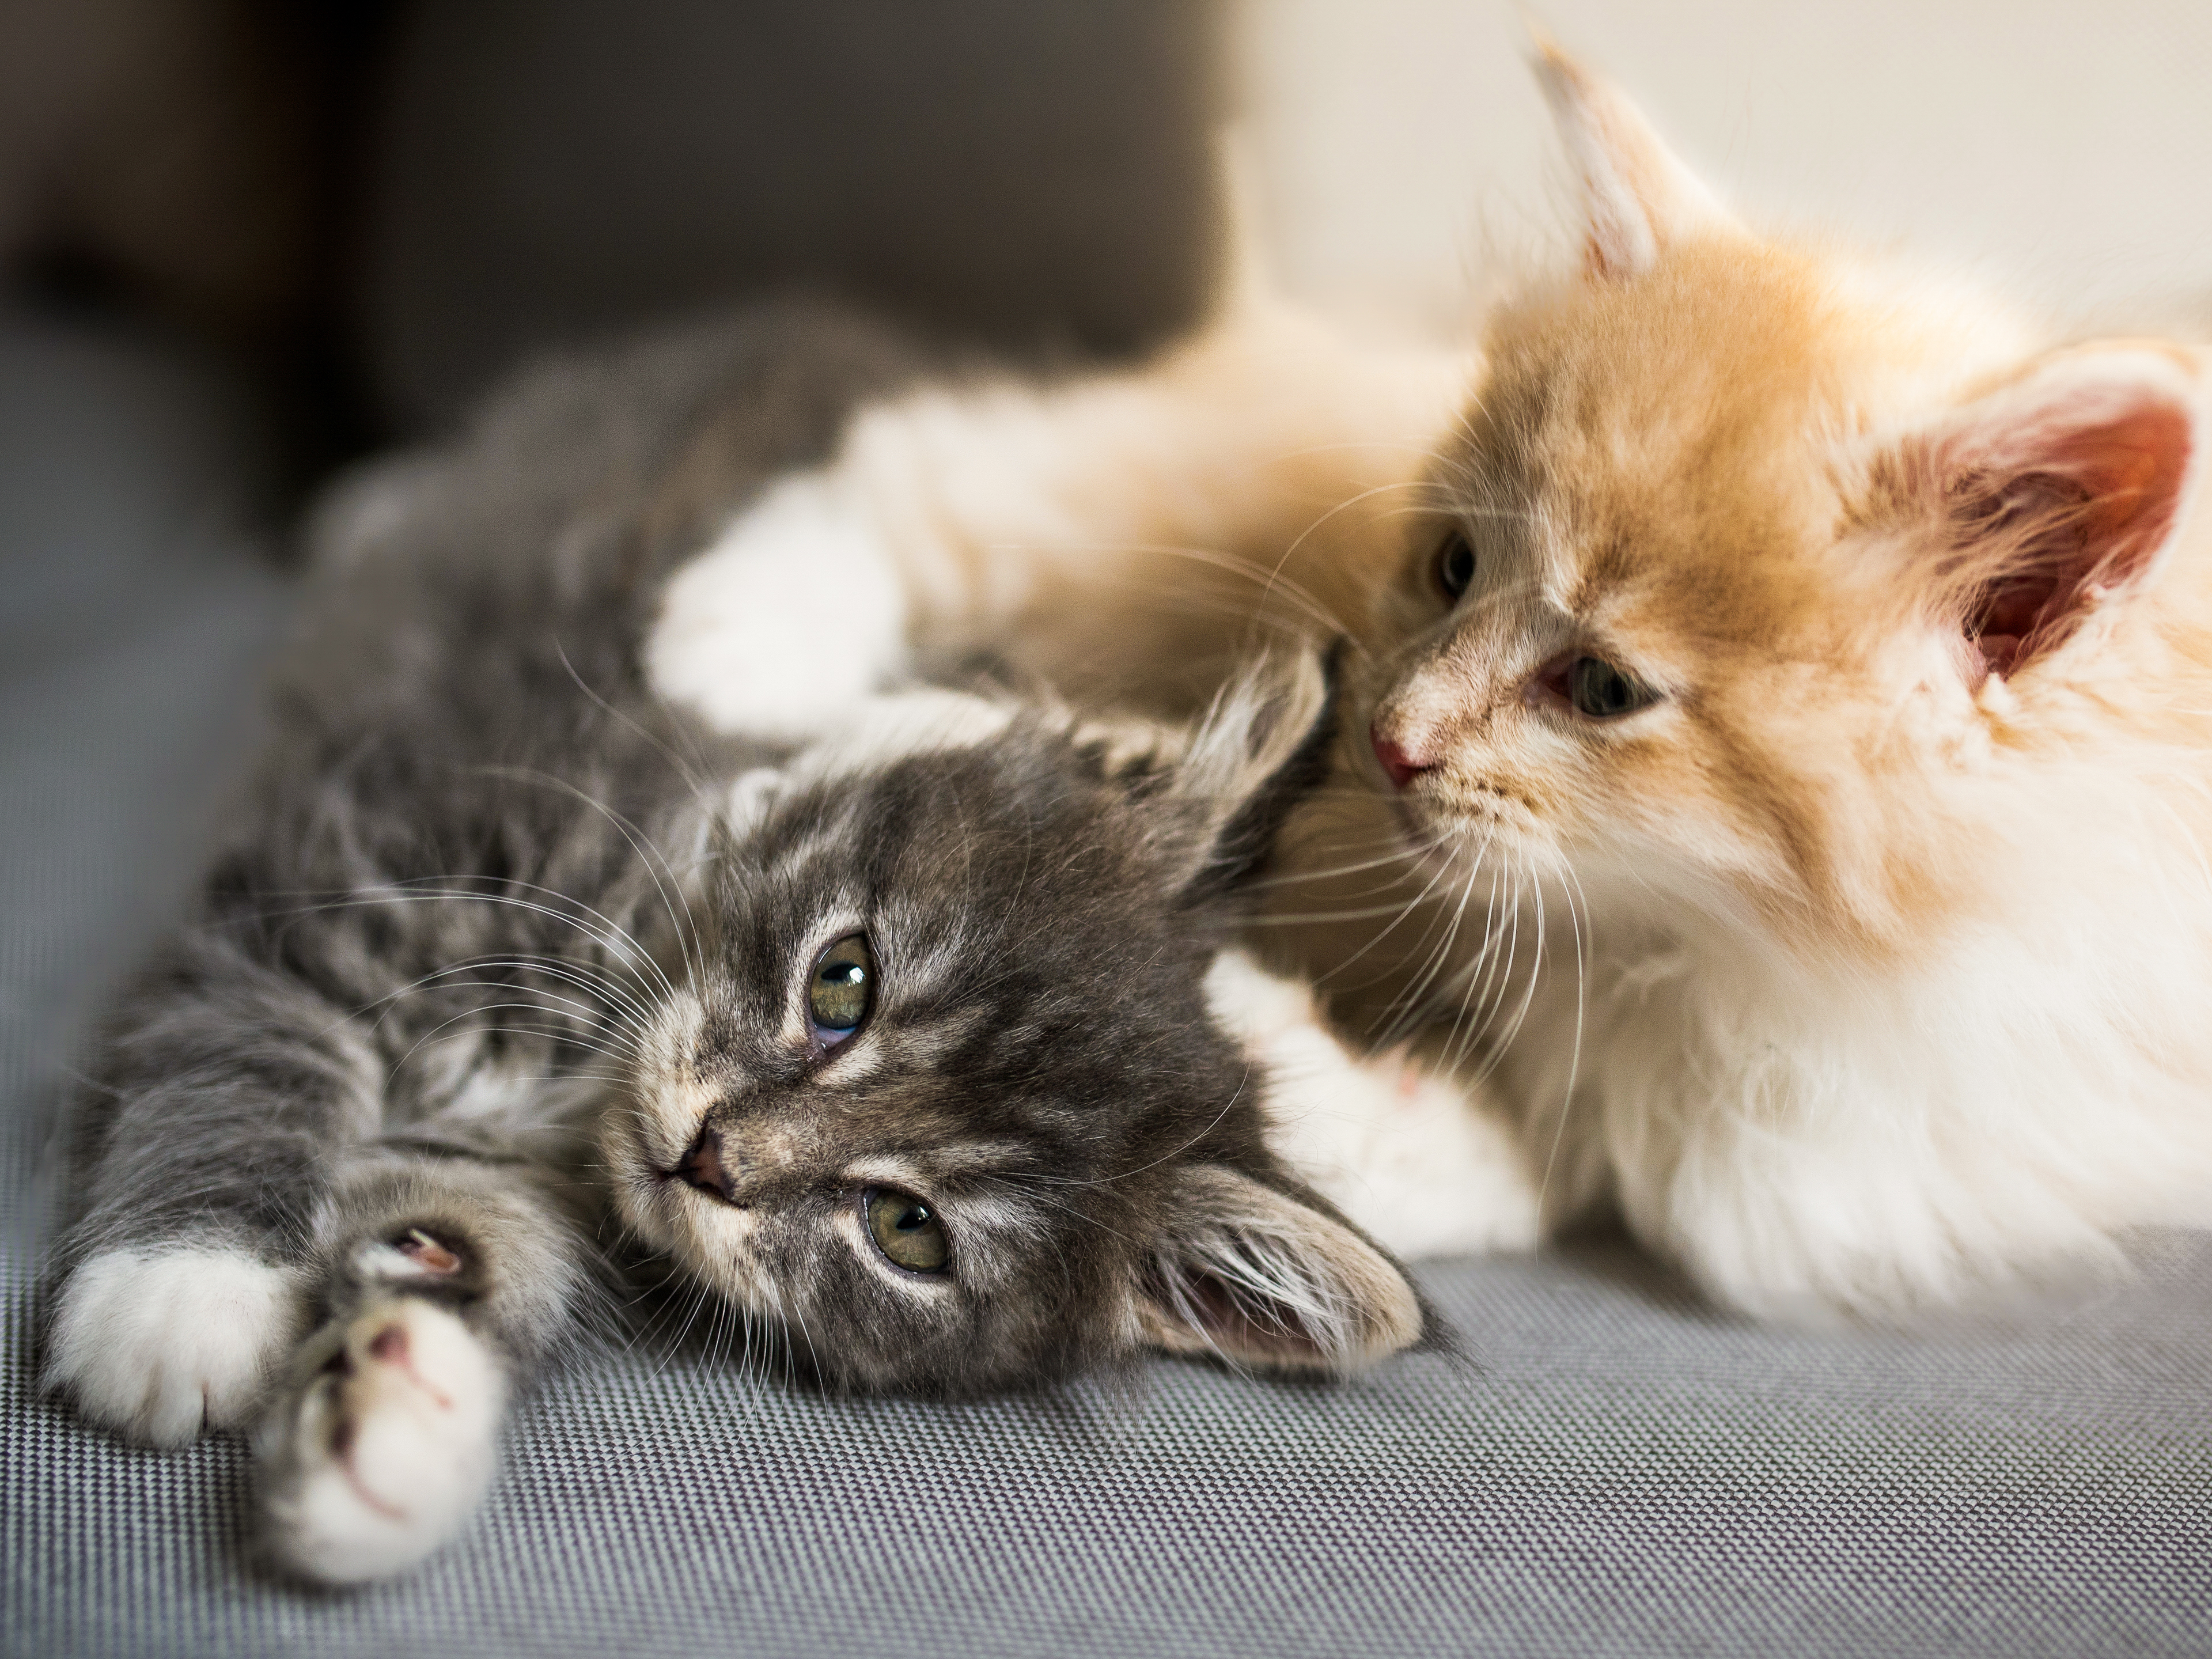 Maine Coon kittens lying down next to each other on a sofa